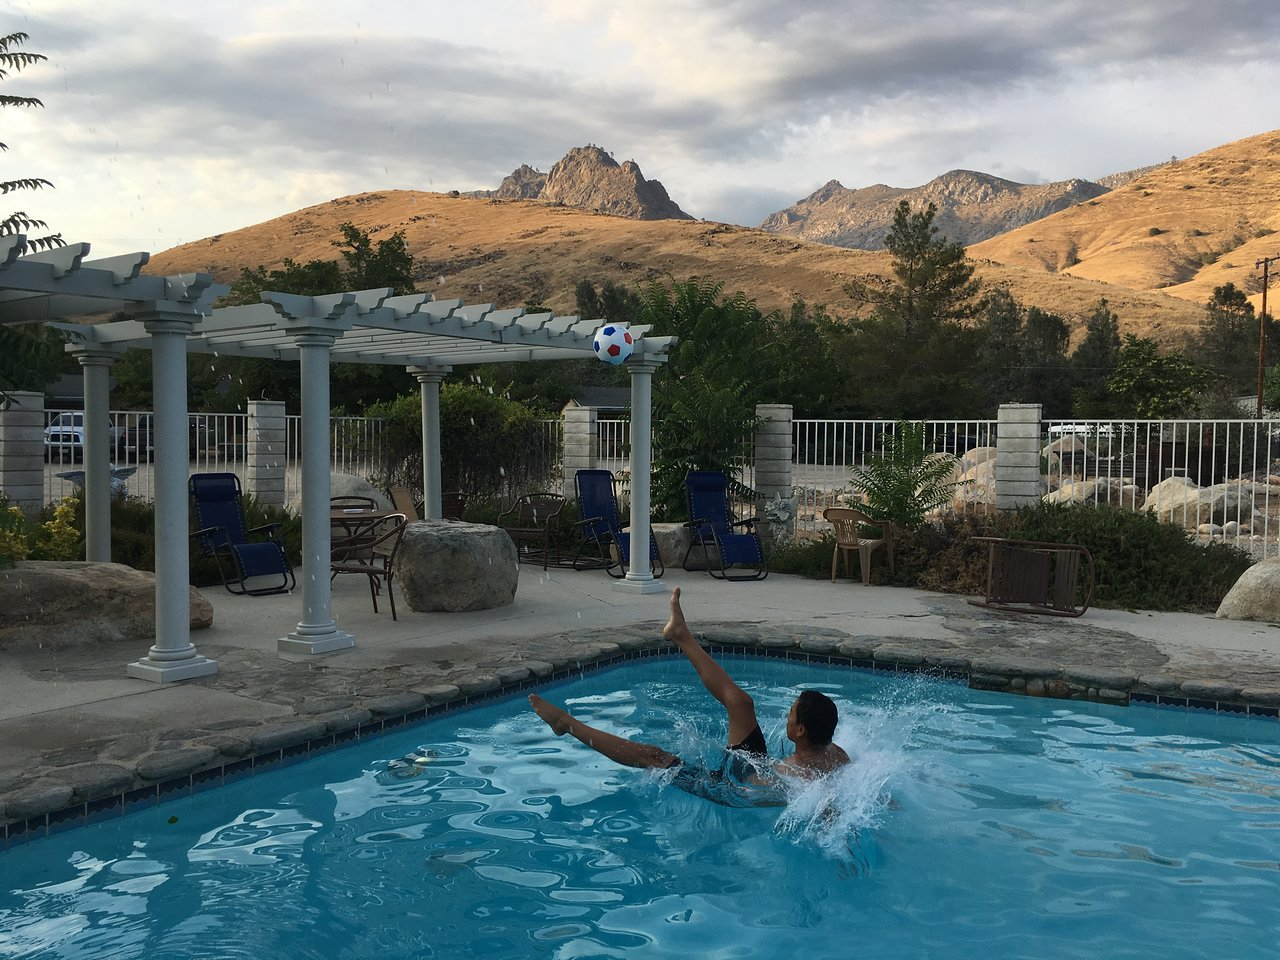 FALLING WATERS RIVER RESORT - Updated 2019 Ranch Reviews